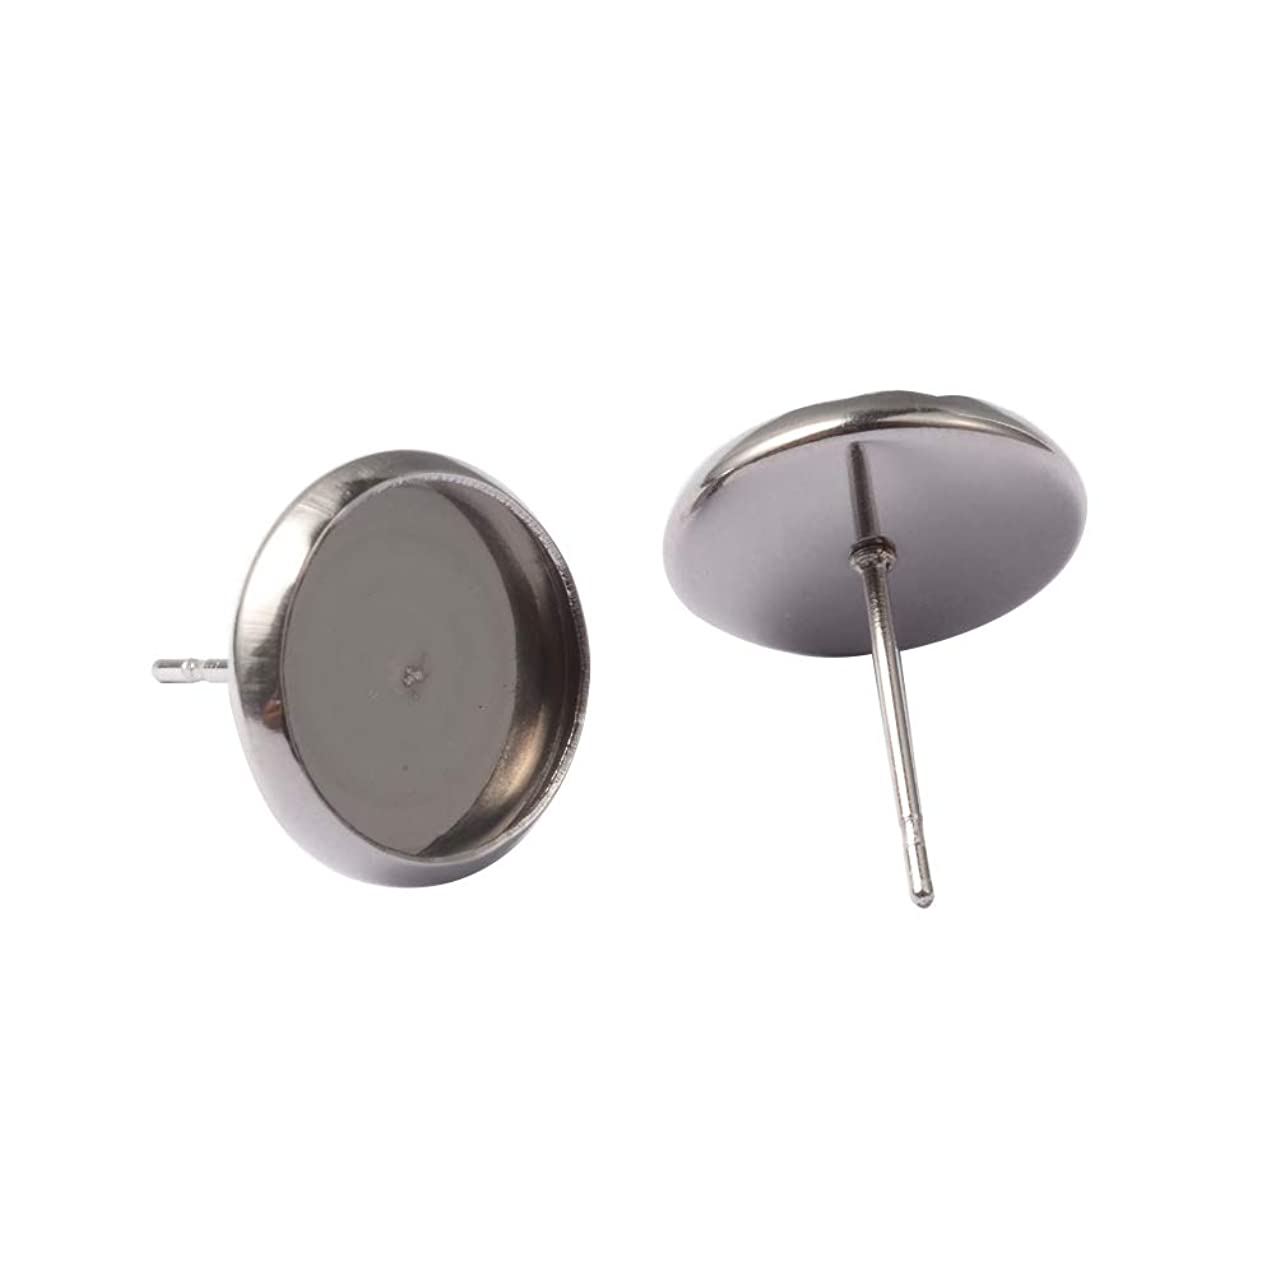 PH PandaHall About 200 Pcs 304 Stainless Steel Ear Stud, Flat Round Bezel Tray Blank Cabochon Setting Earring Posts for Earring Finding, Platinum, Inner Tray: 10mm znpxewbizcsrq620